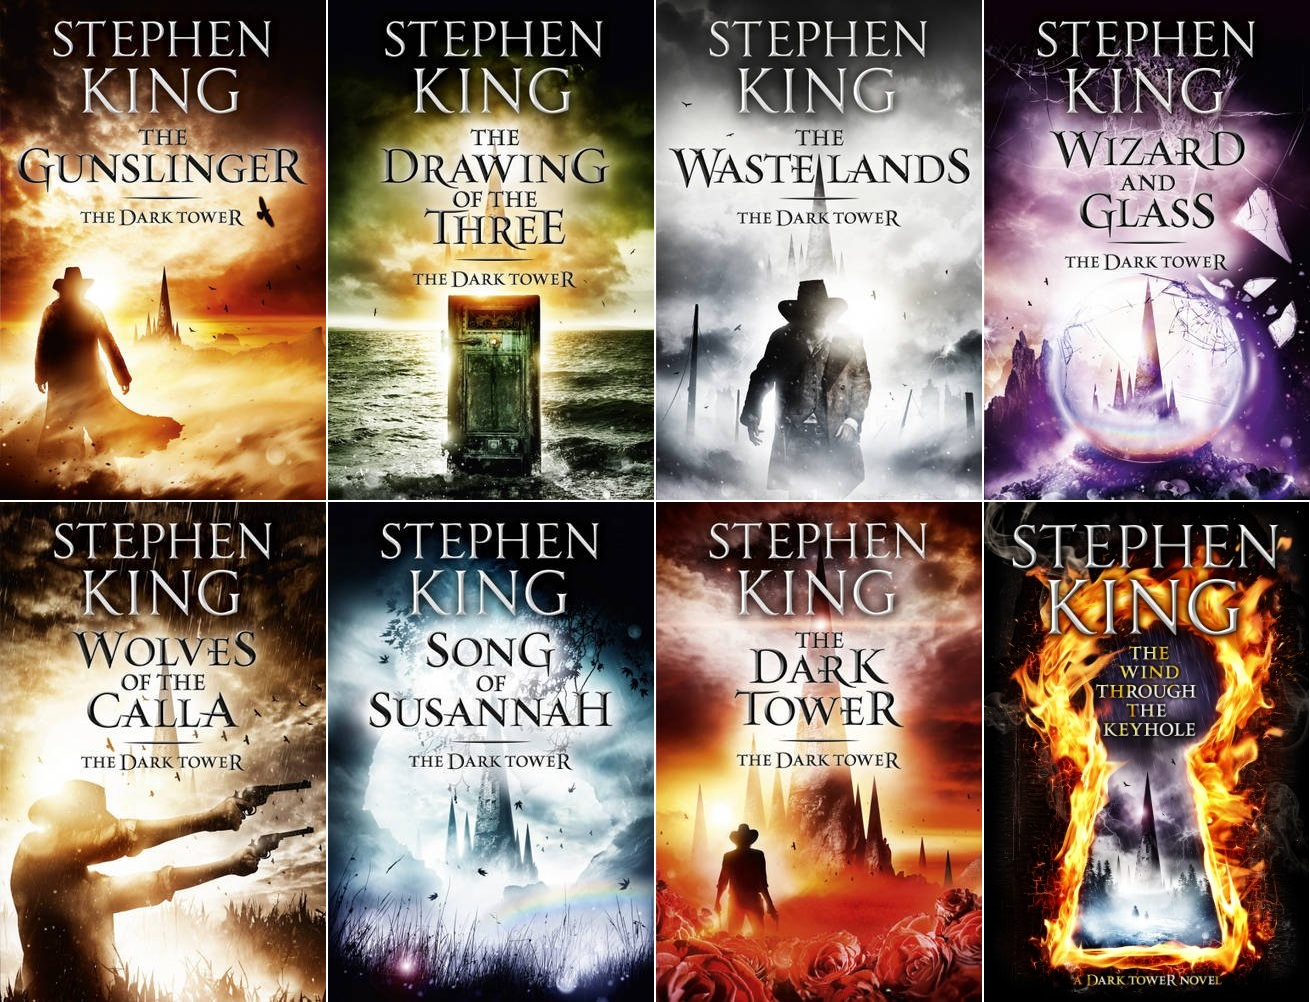 Stephen king dark tower the wind through the keyhole pdf